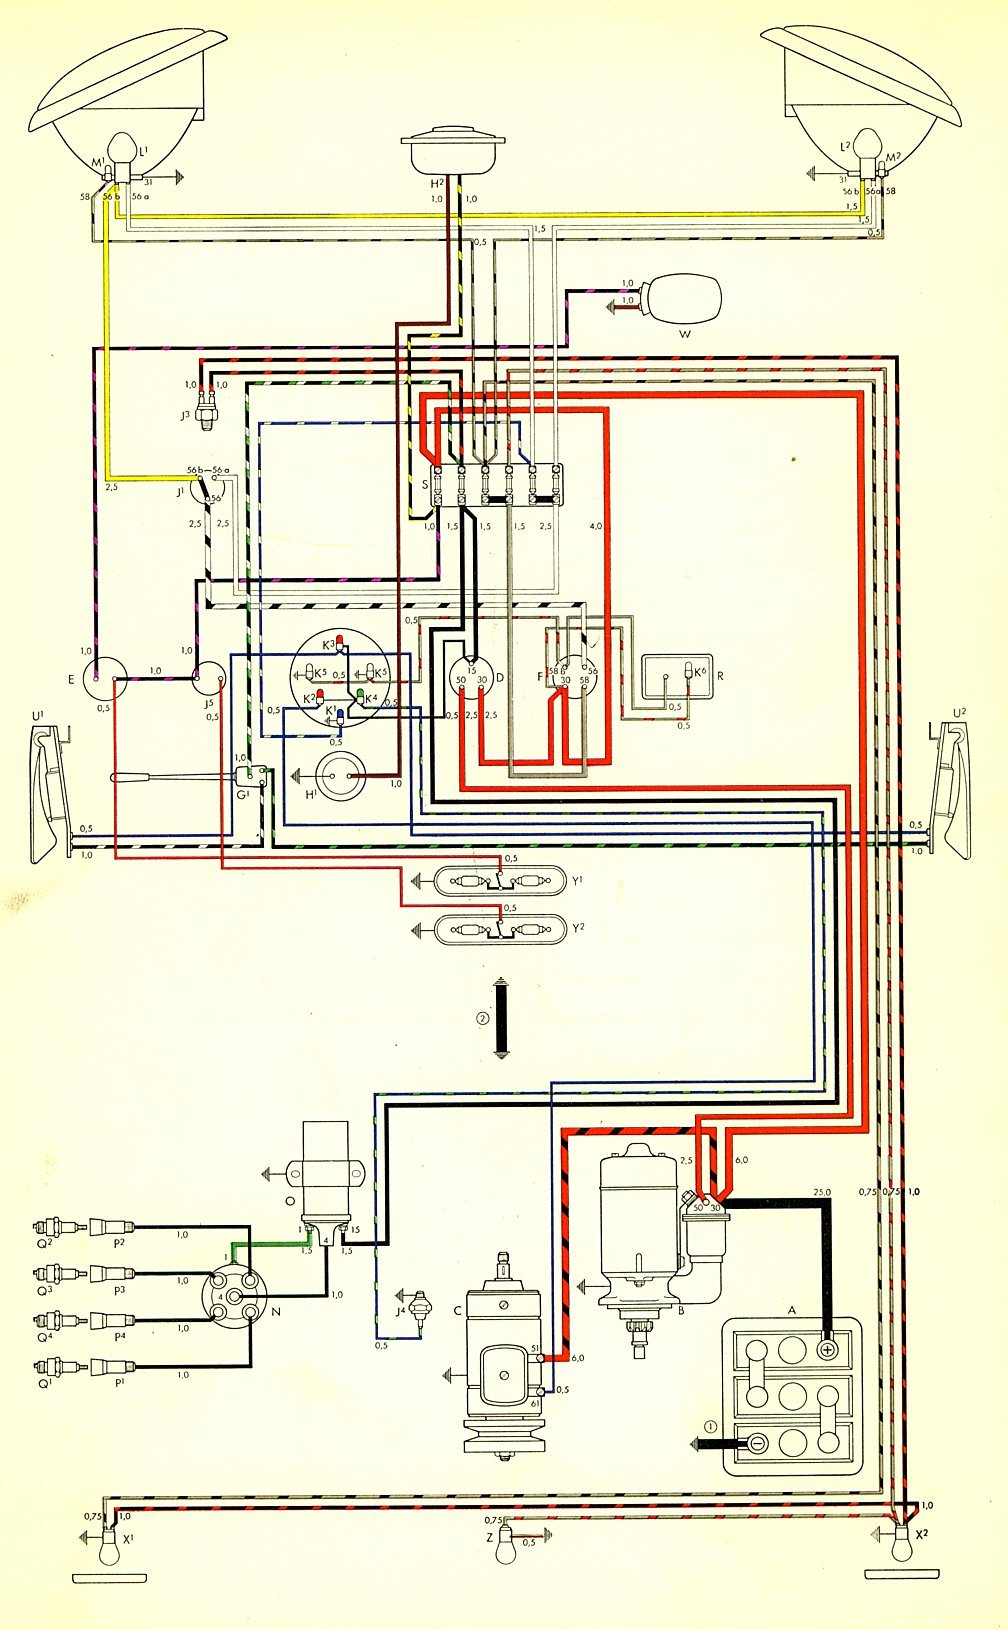 bus_59 wiring diagram for 1971 vw bus readingrat net 1978 vw bus fuse box diagram at arjmand.co